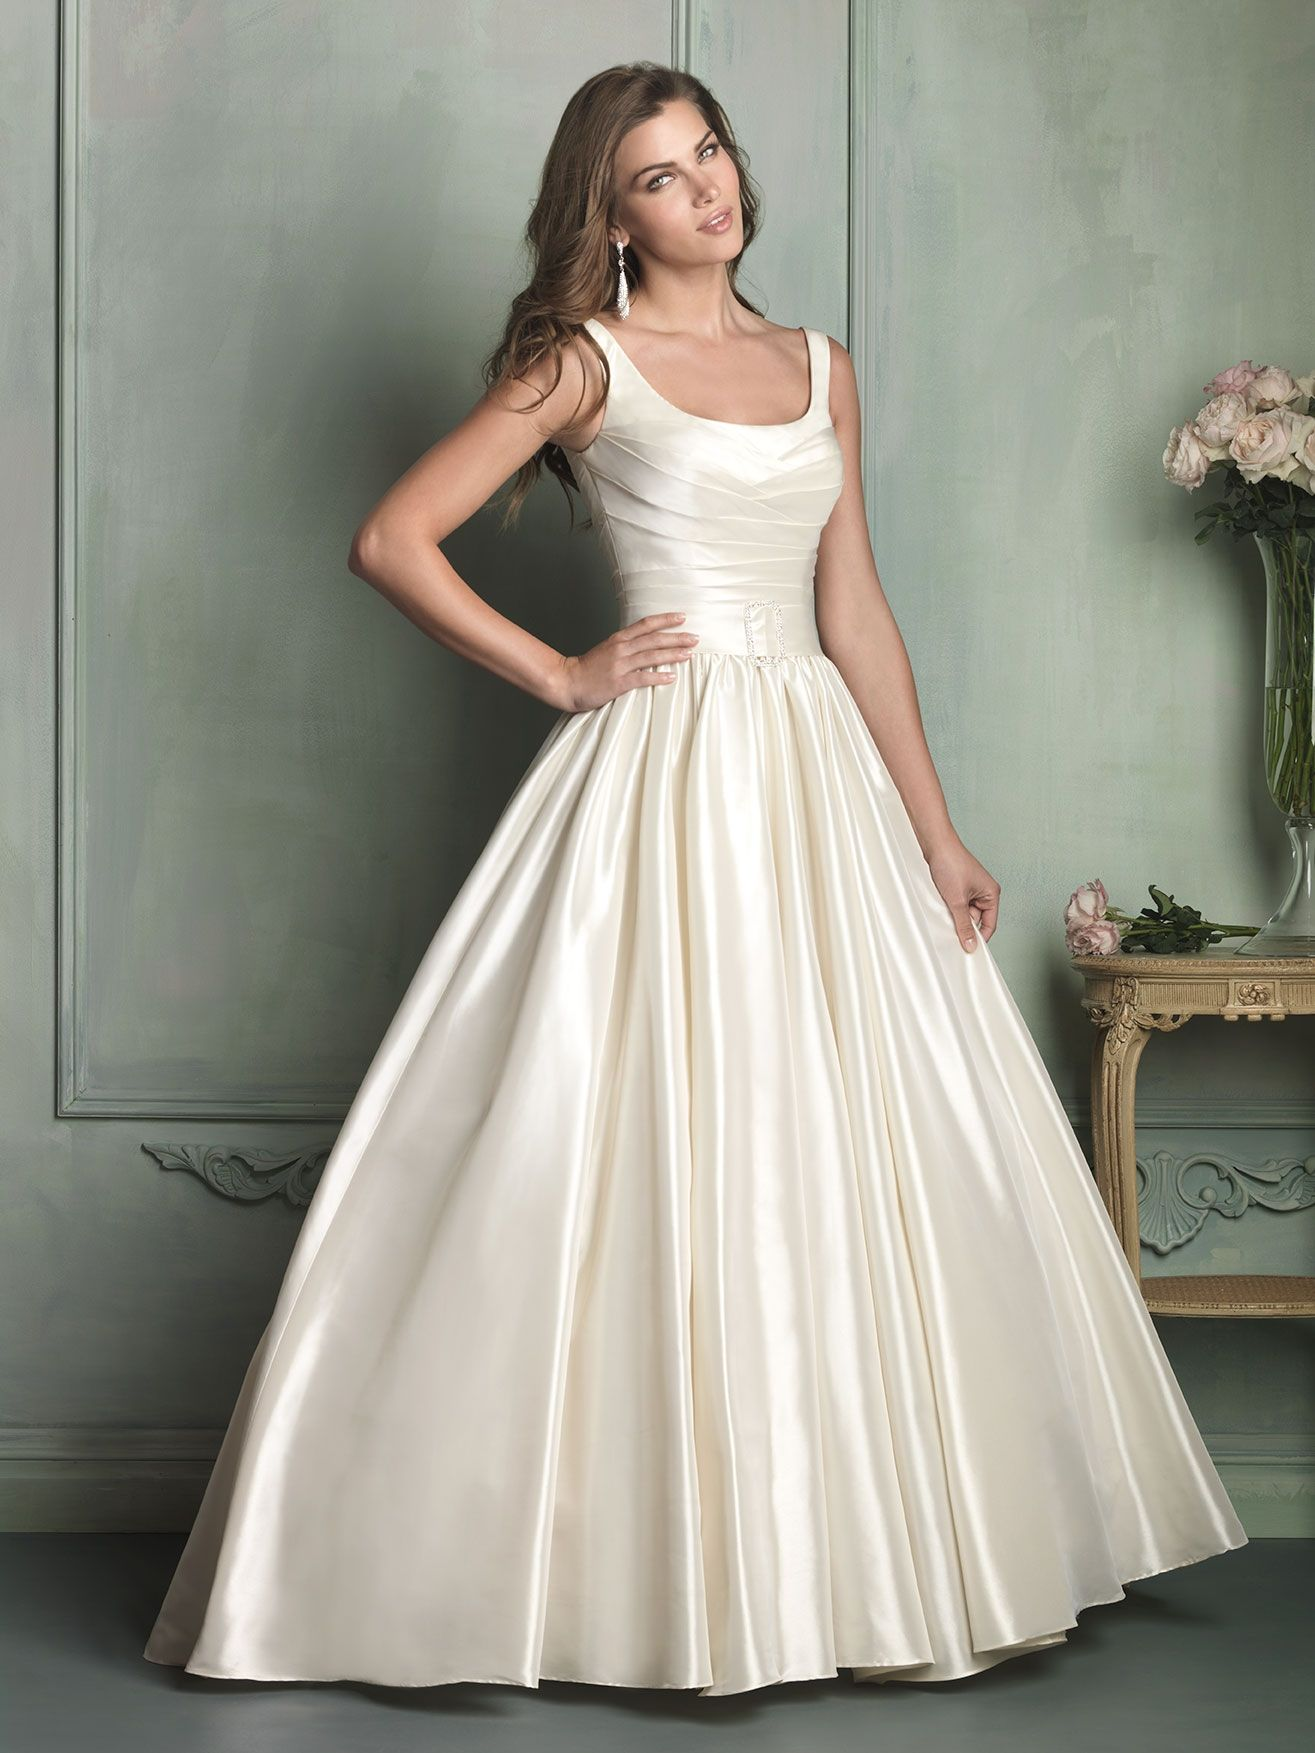 Allure 9108: Like the neckline and fabric, not the belt or how the ...